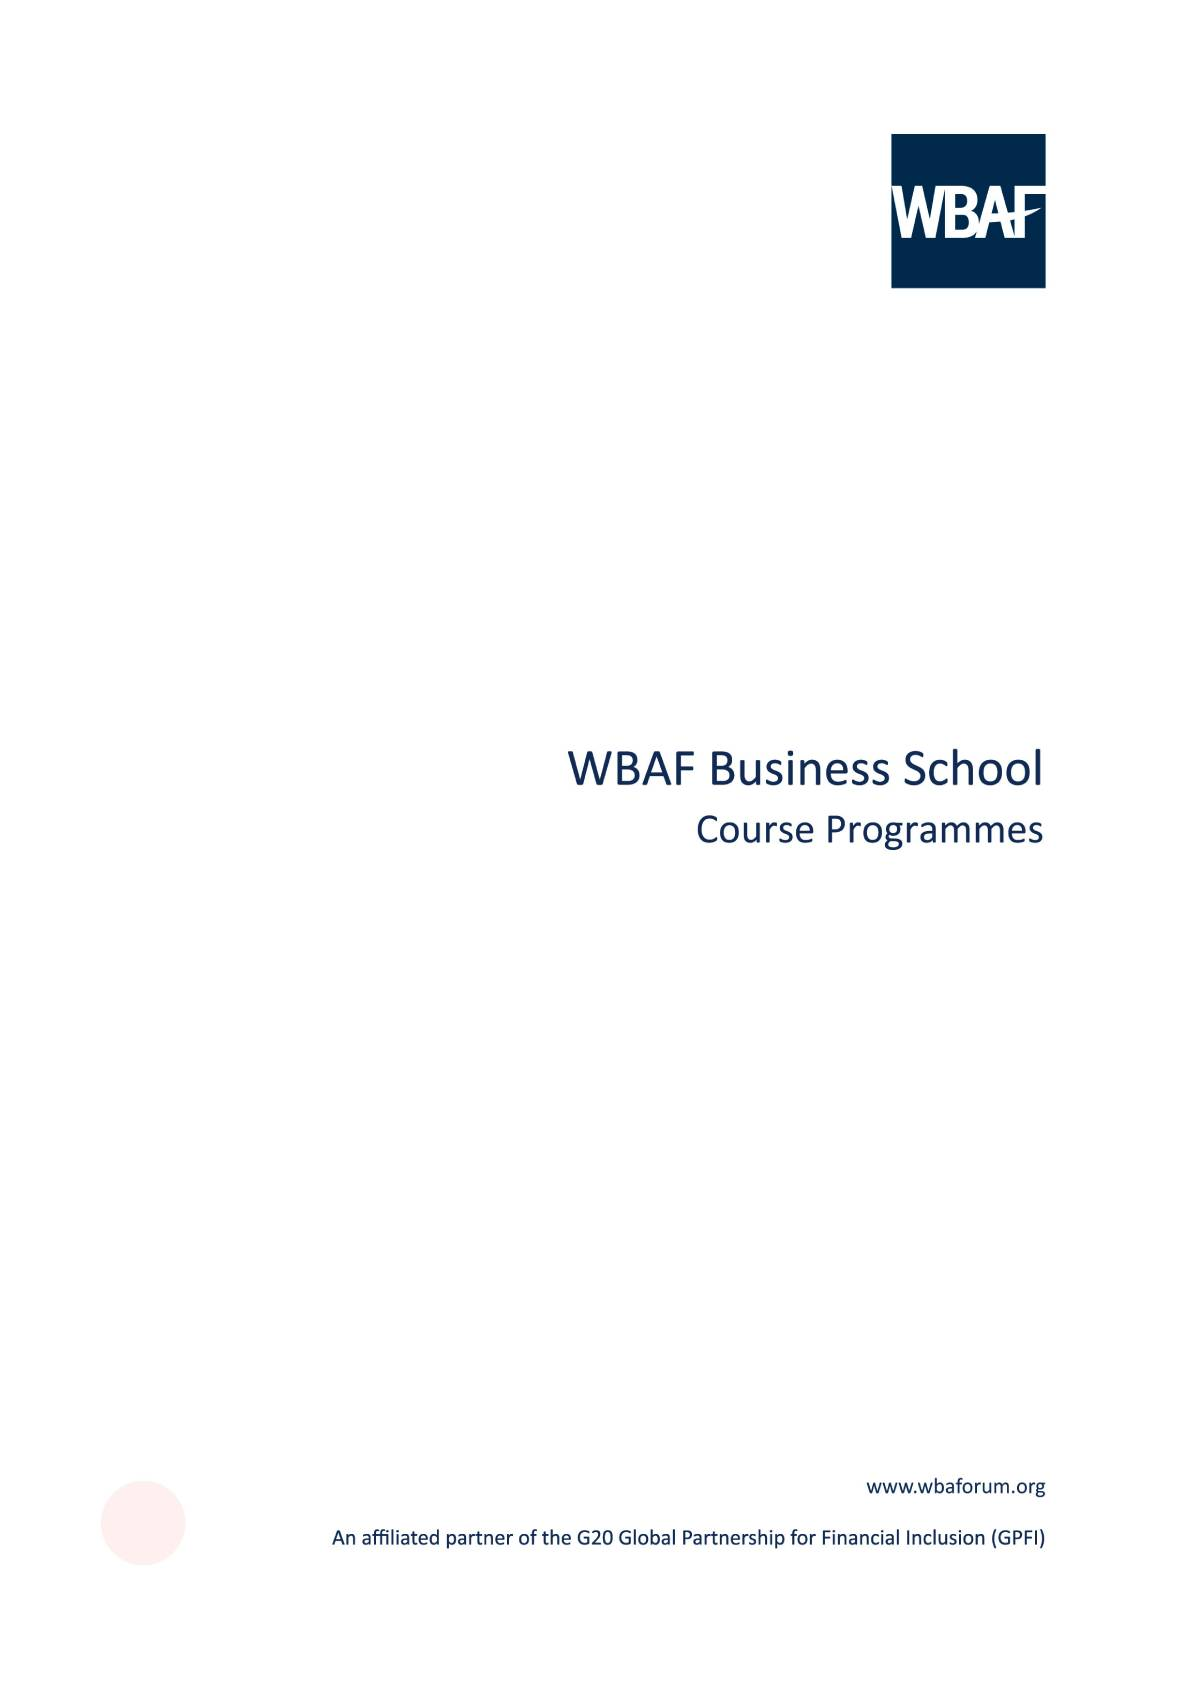 Wbaf Business School - Course Programmes